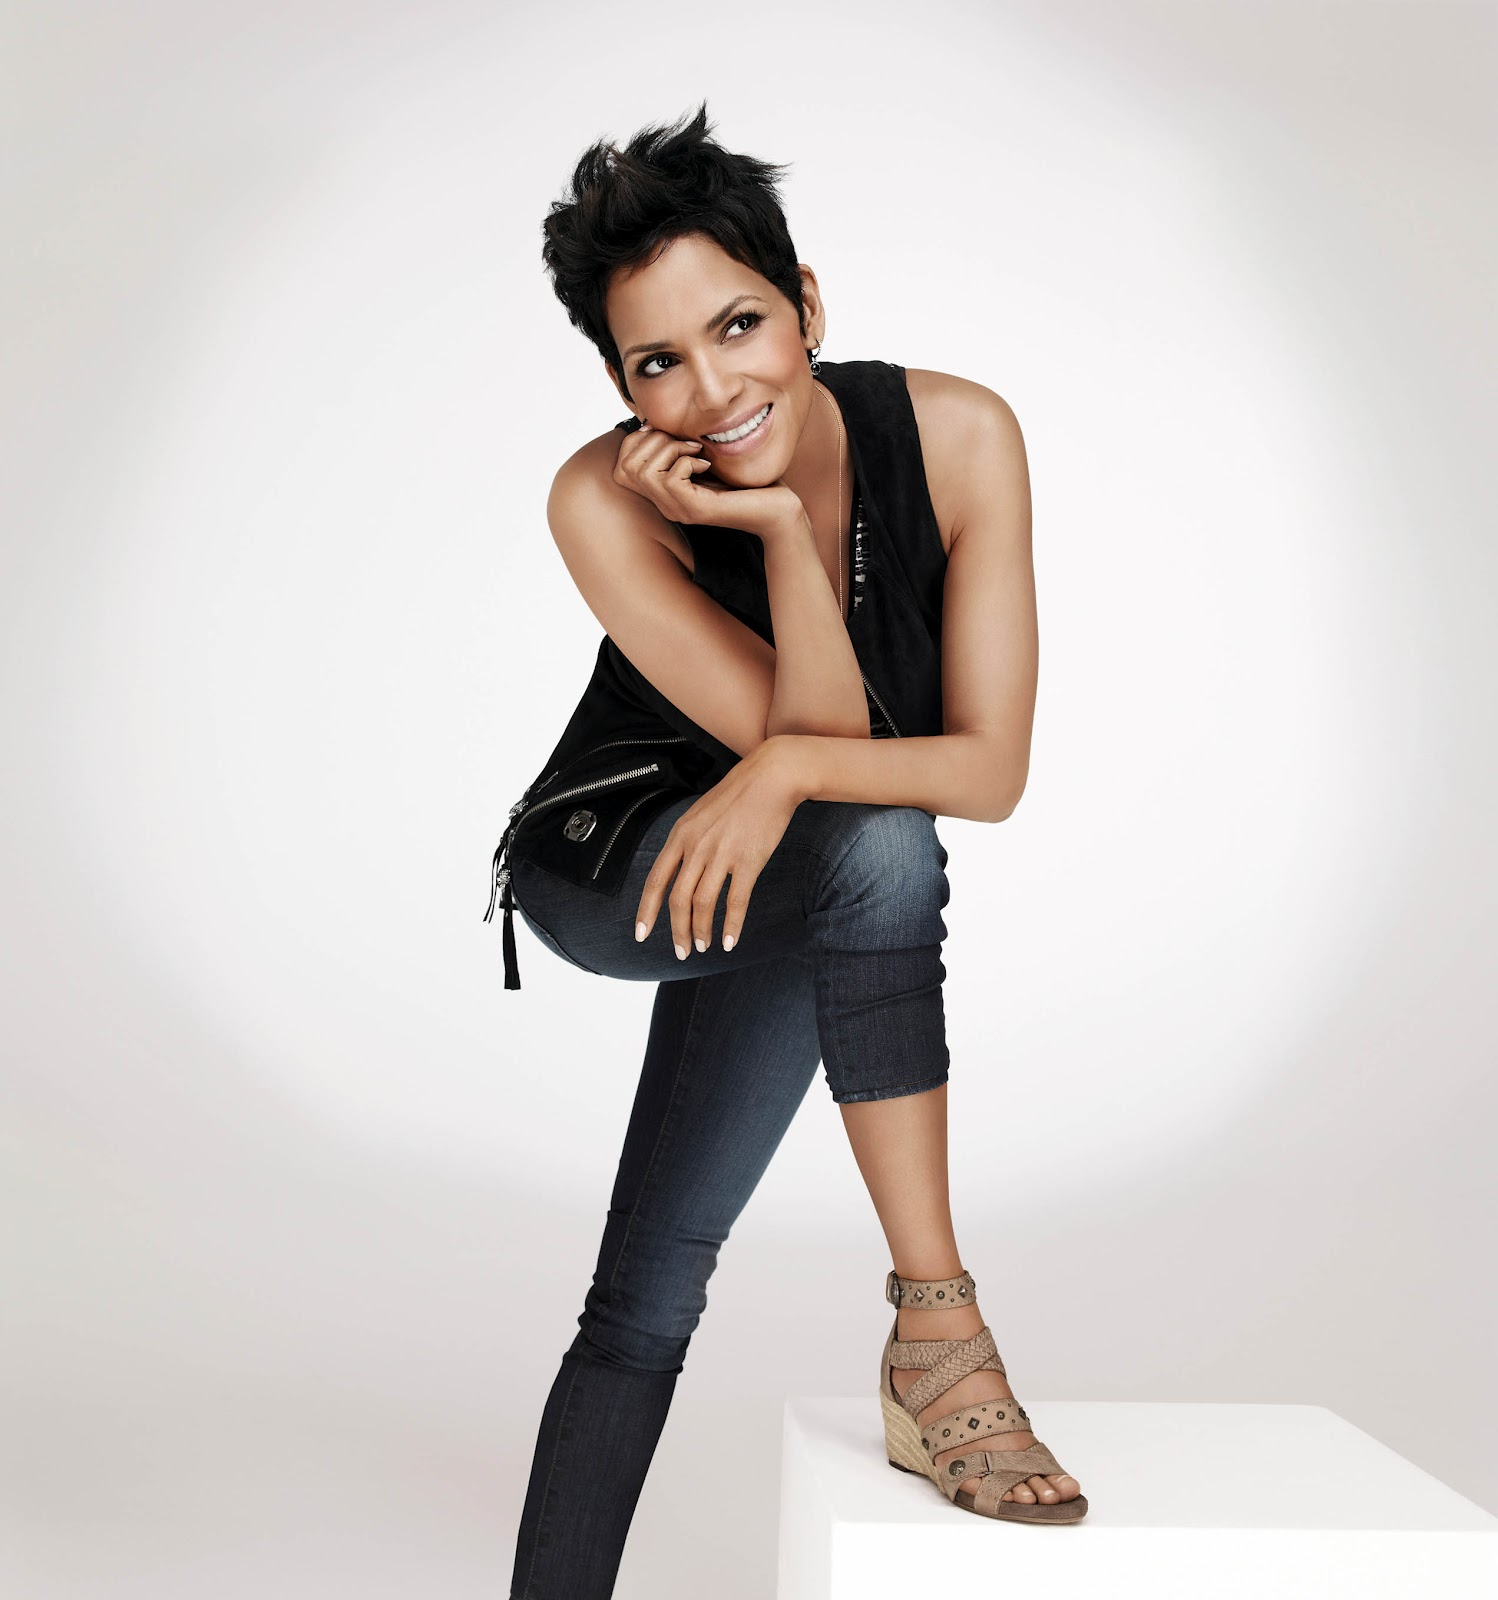 Halle Berry Fashion Model